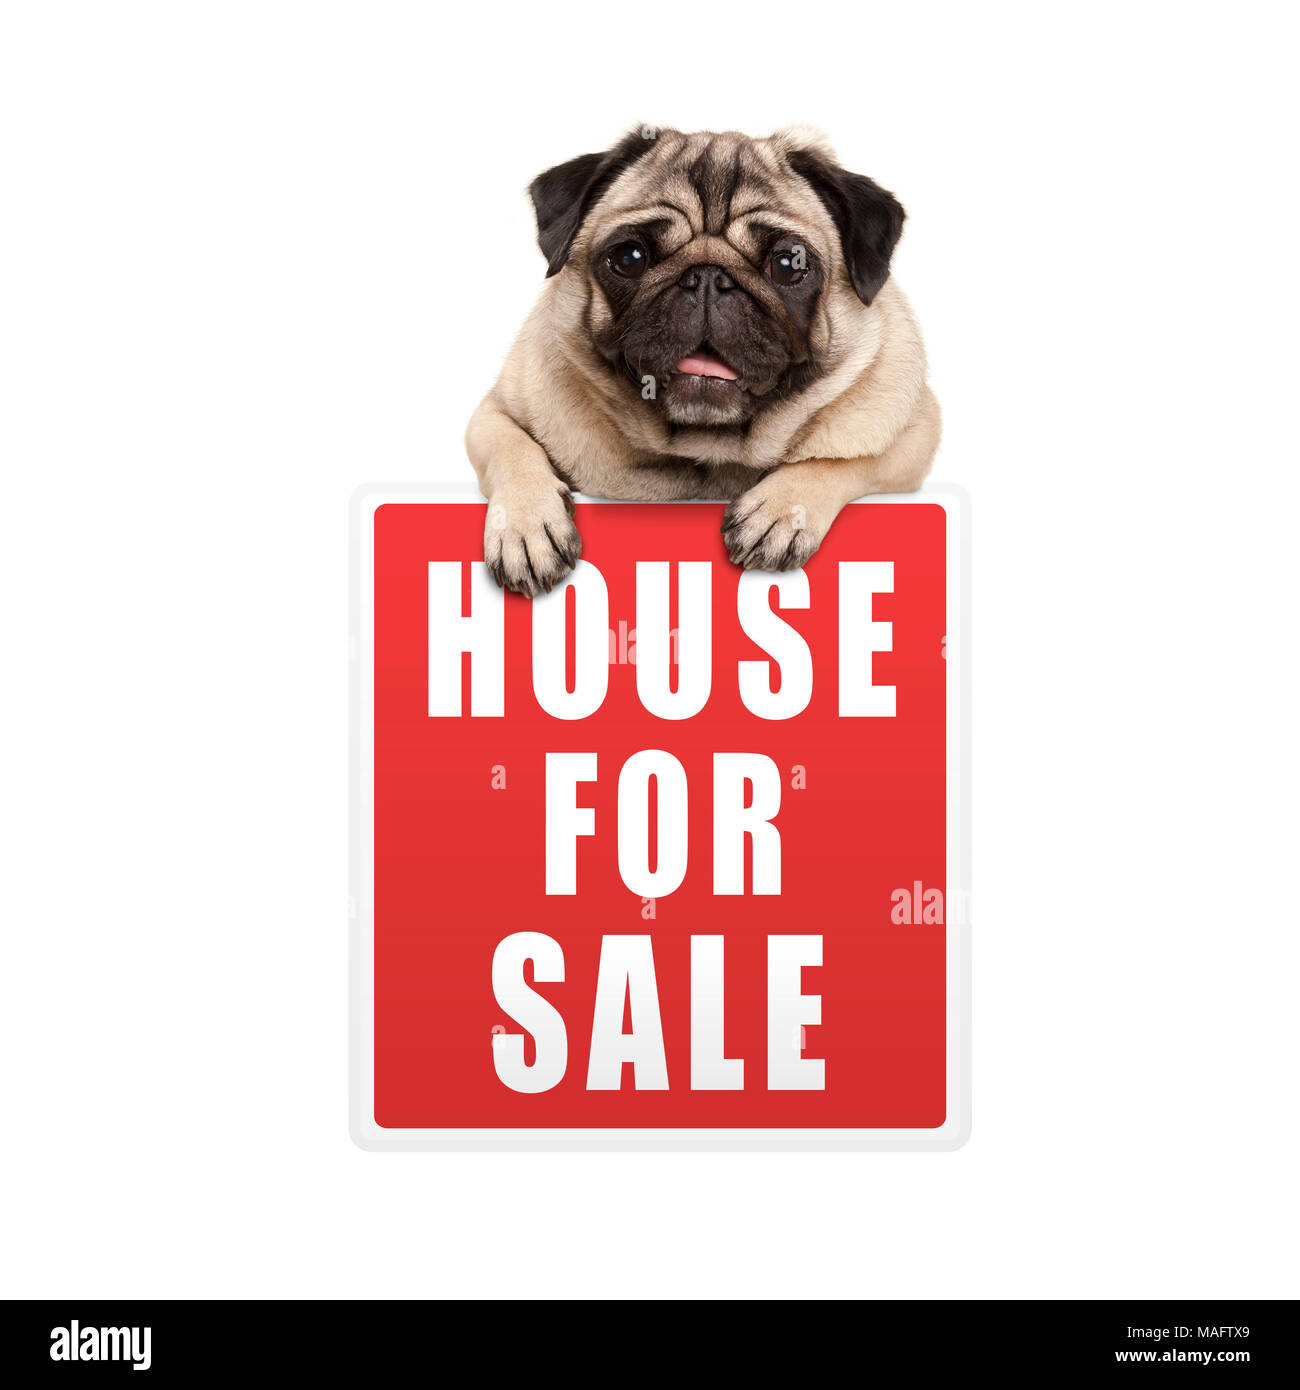 cute pug puppy dog hanging with paws on red house for sale sign, isolated on white background Stock Photo